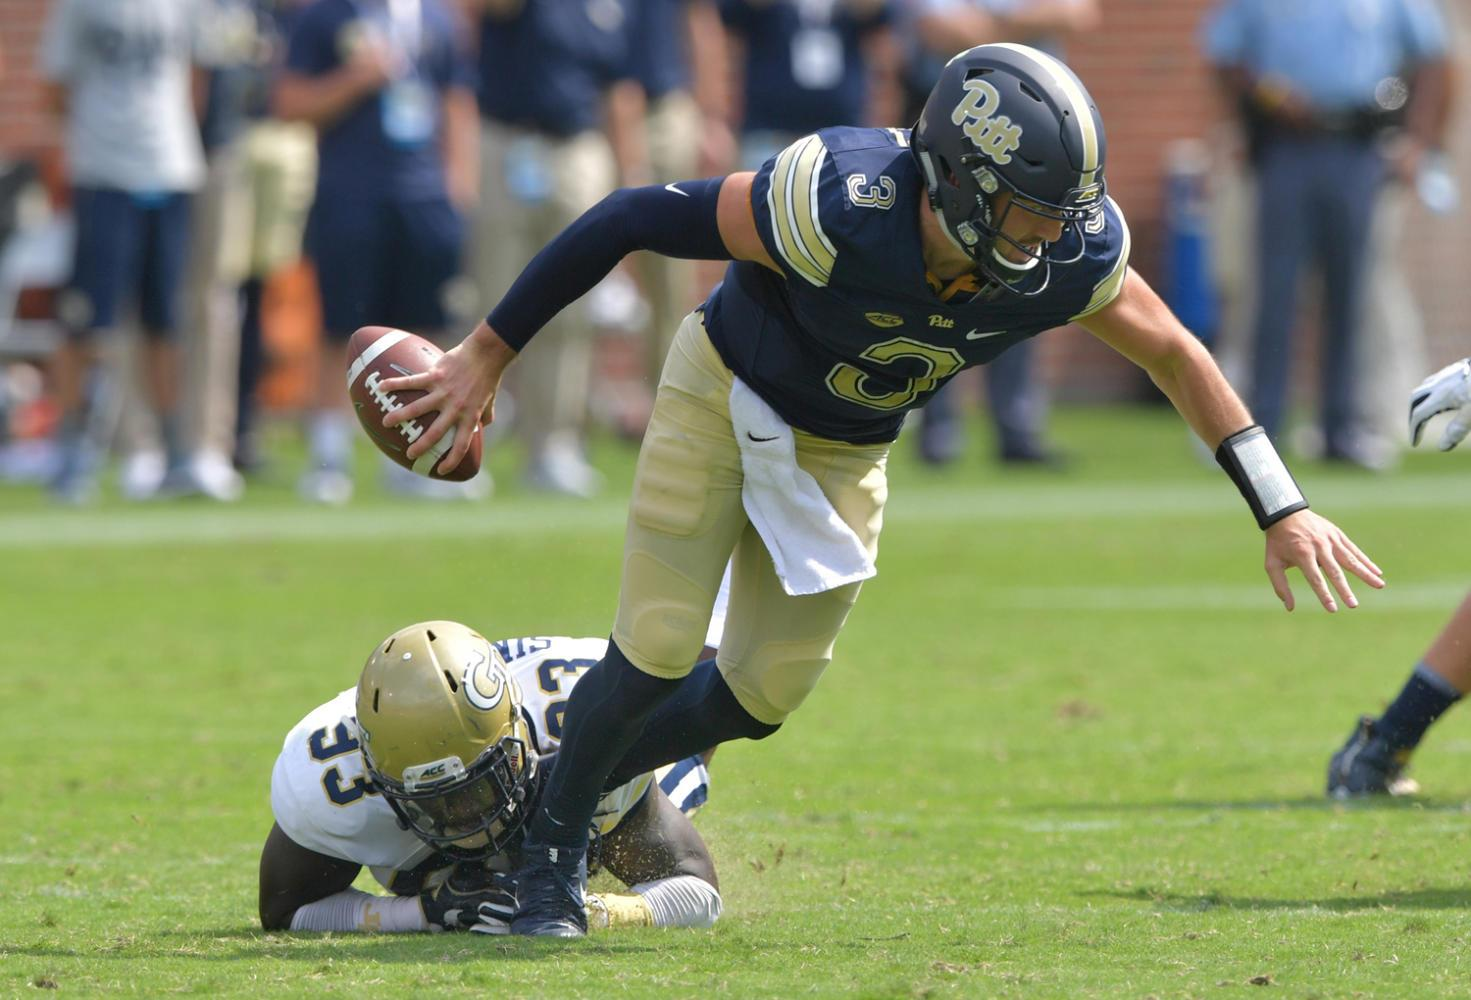 Pittsburgh quarterback Ben Dinucci (3) gets tackled by Georgia Tech defensive lineman Antonio Simmons (93) in the second half of Georgia Tech's 35-17 victory over Pitt. (Hyosub Shin/Atlanta Journal-Constitution/TNS)